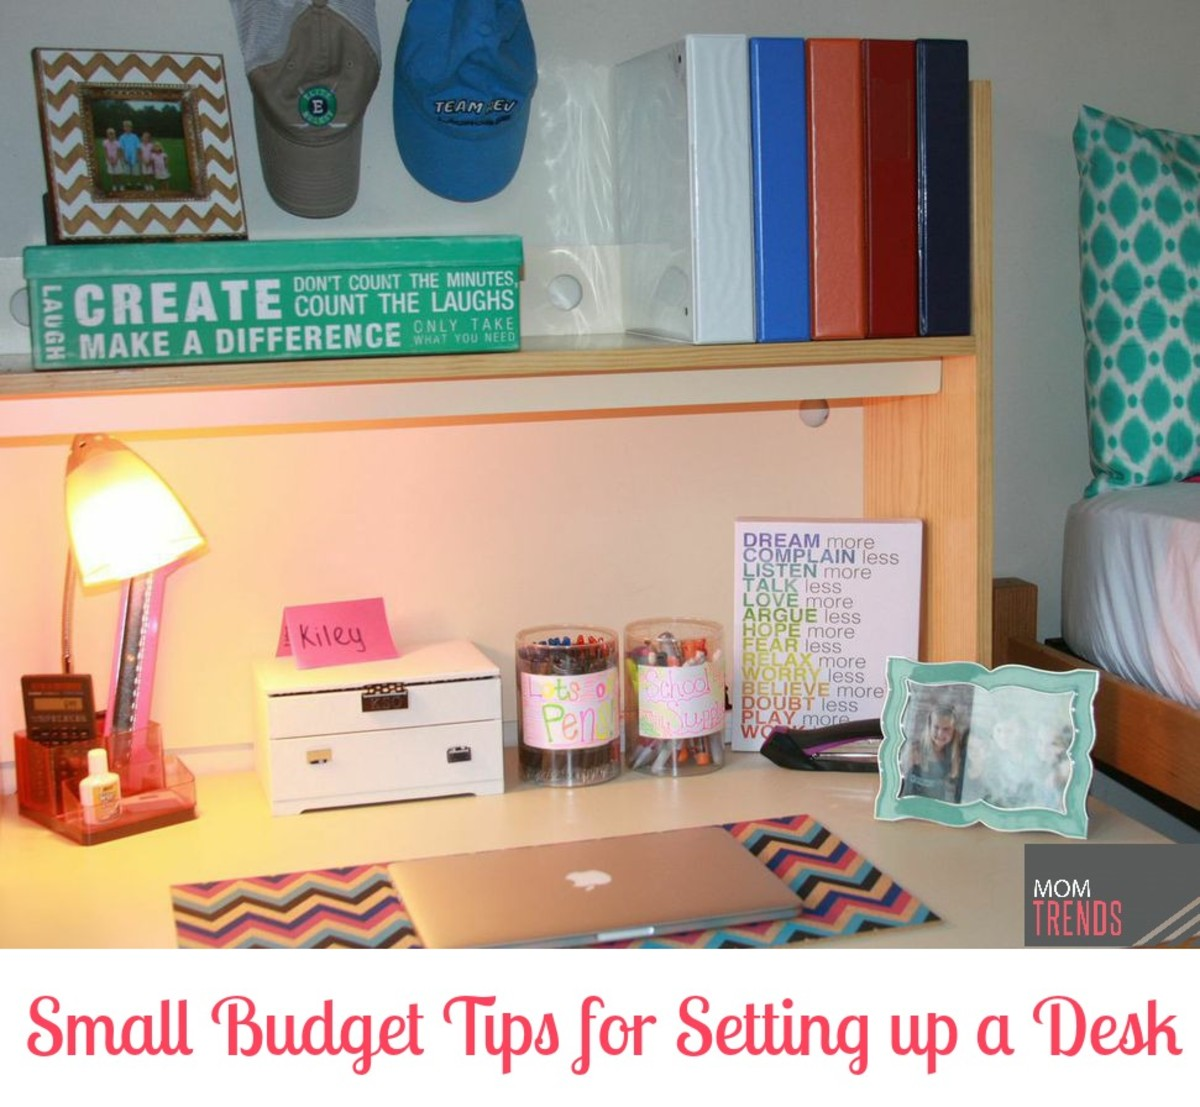 Small Budget Tips for a Chic Desk